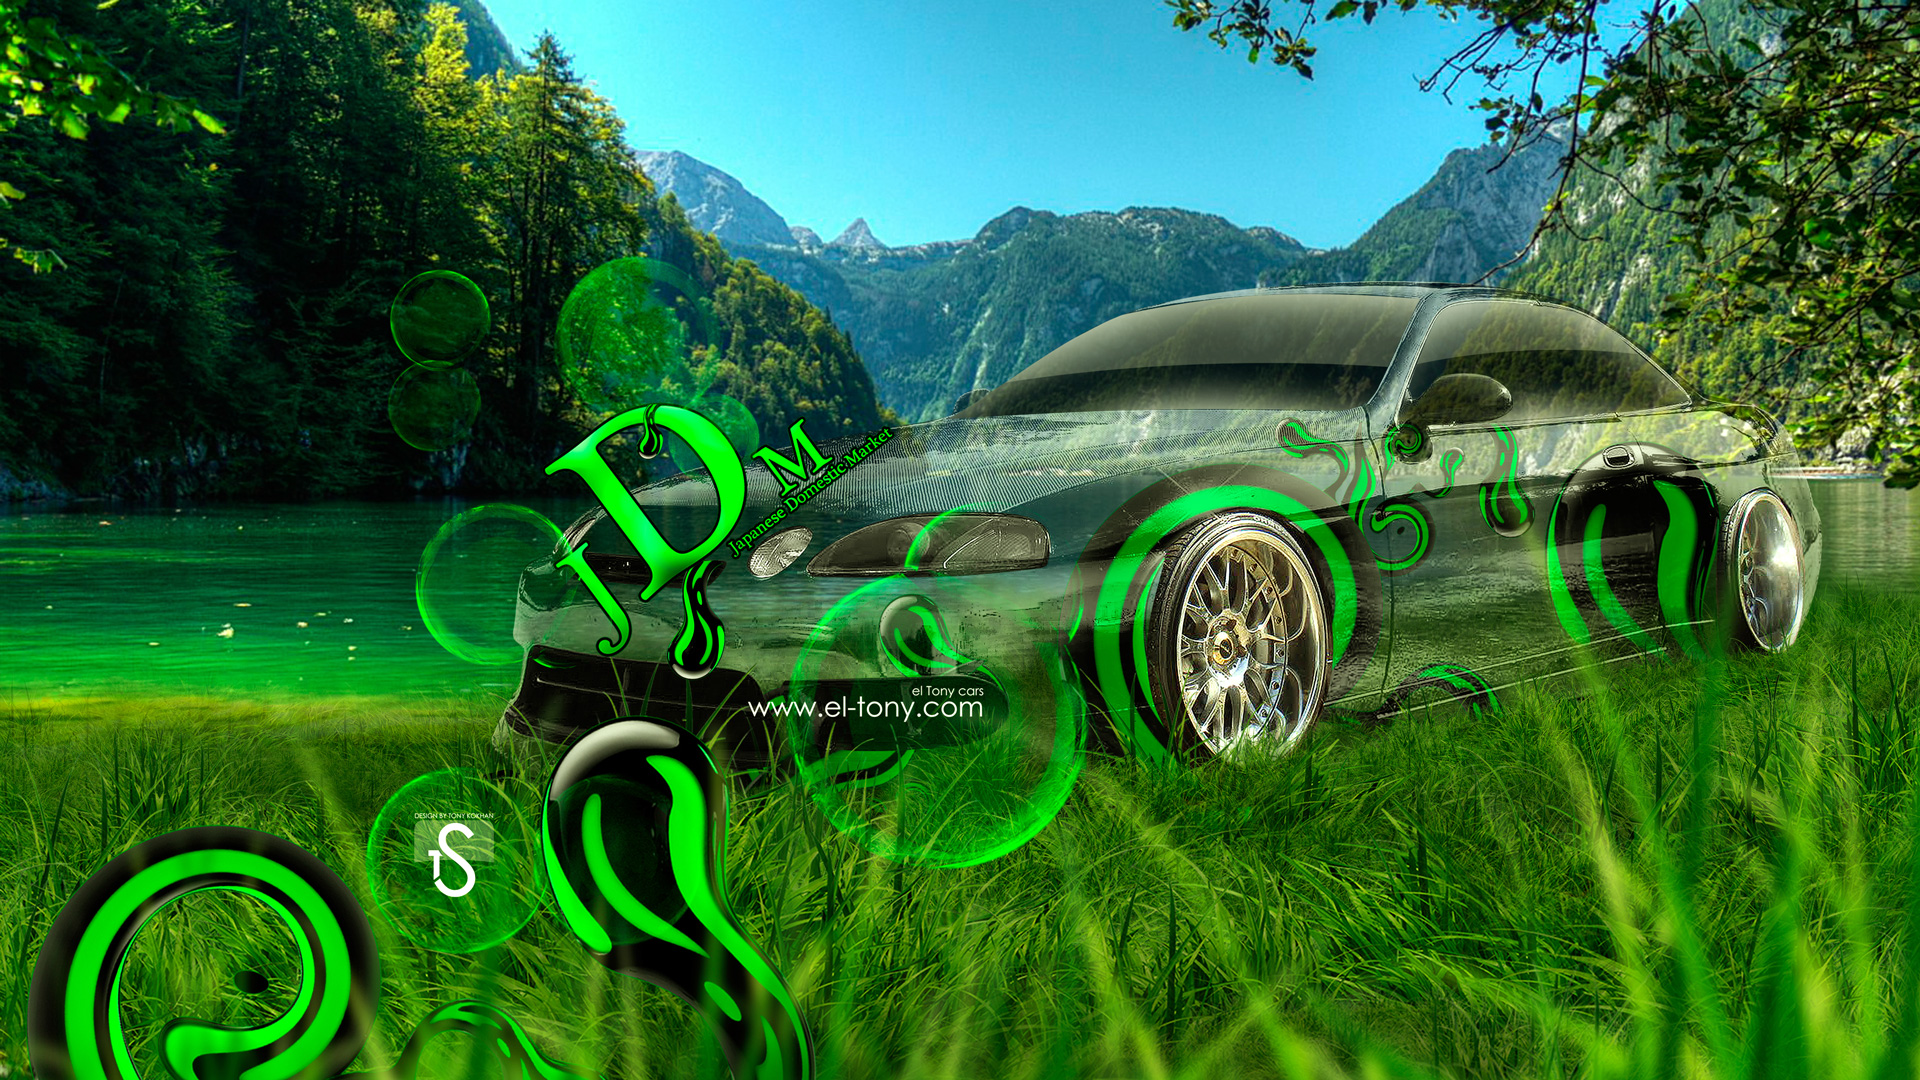 Superieur Toyota Soarer JDM Crystal Nature Car 2013 HD